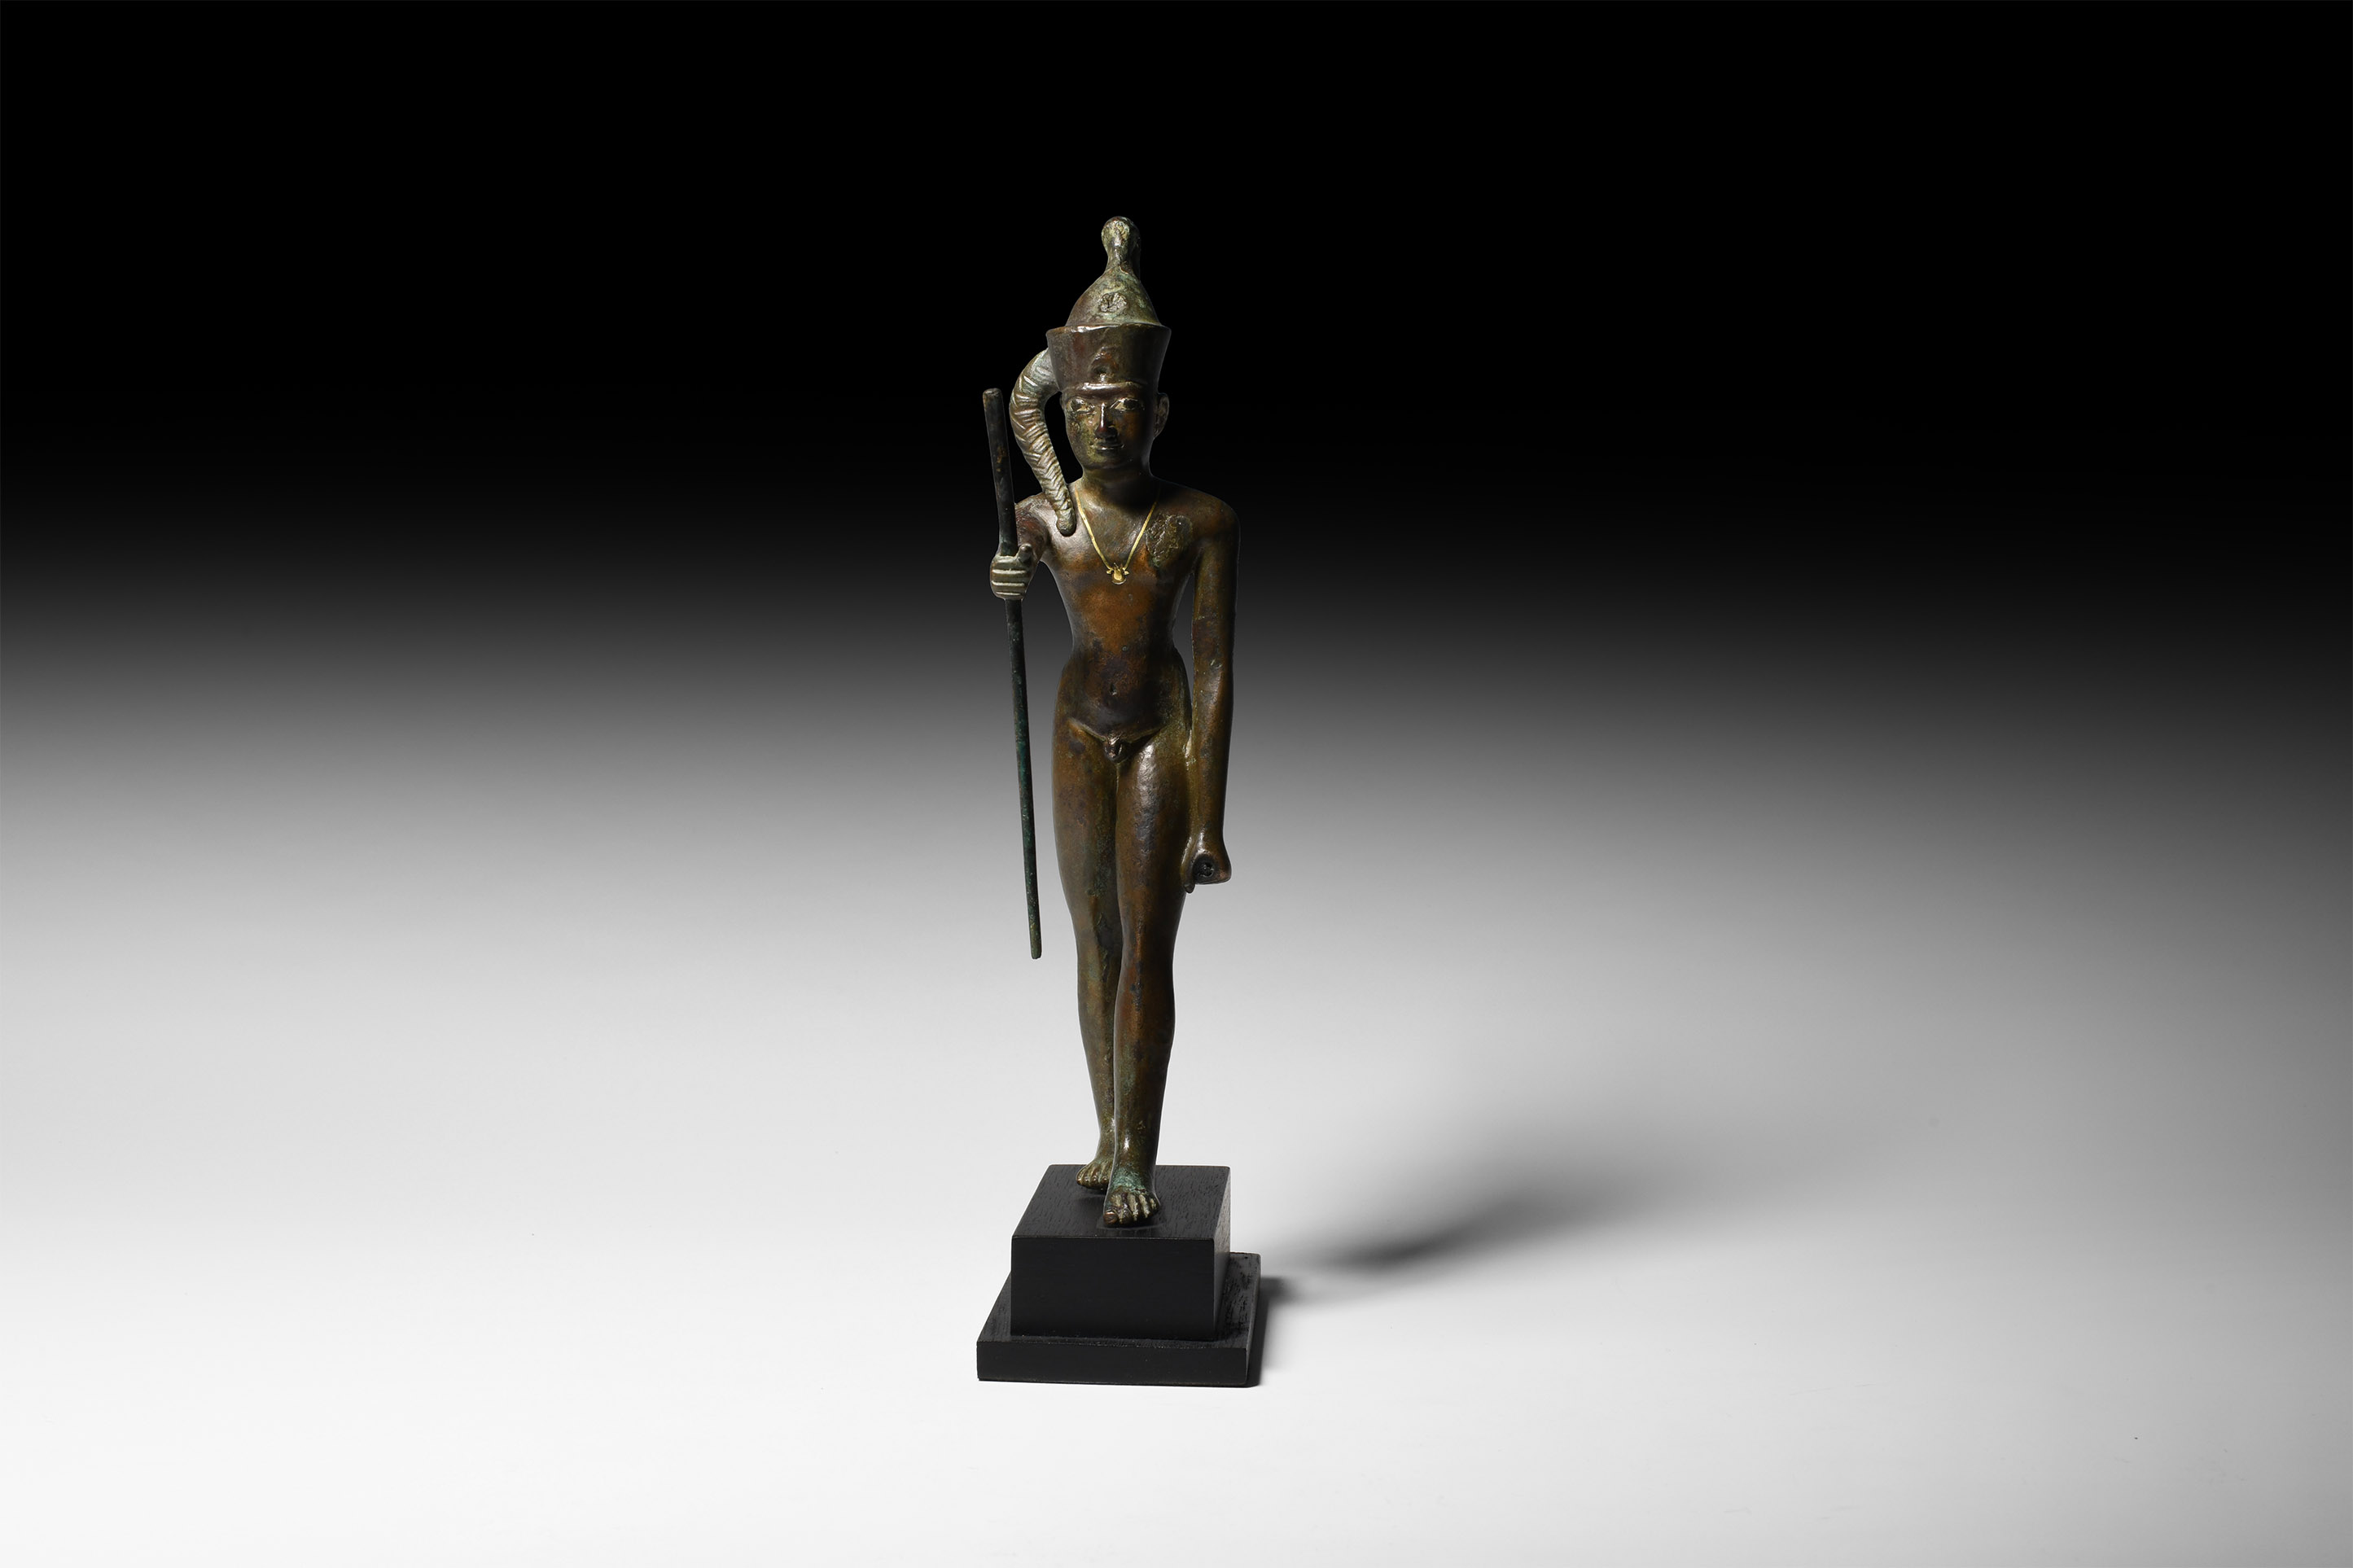 Egyptian Statuette of the God Ihy with Gold Necklace and Silver Inlaid Eyes